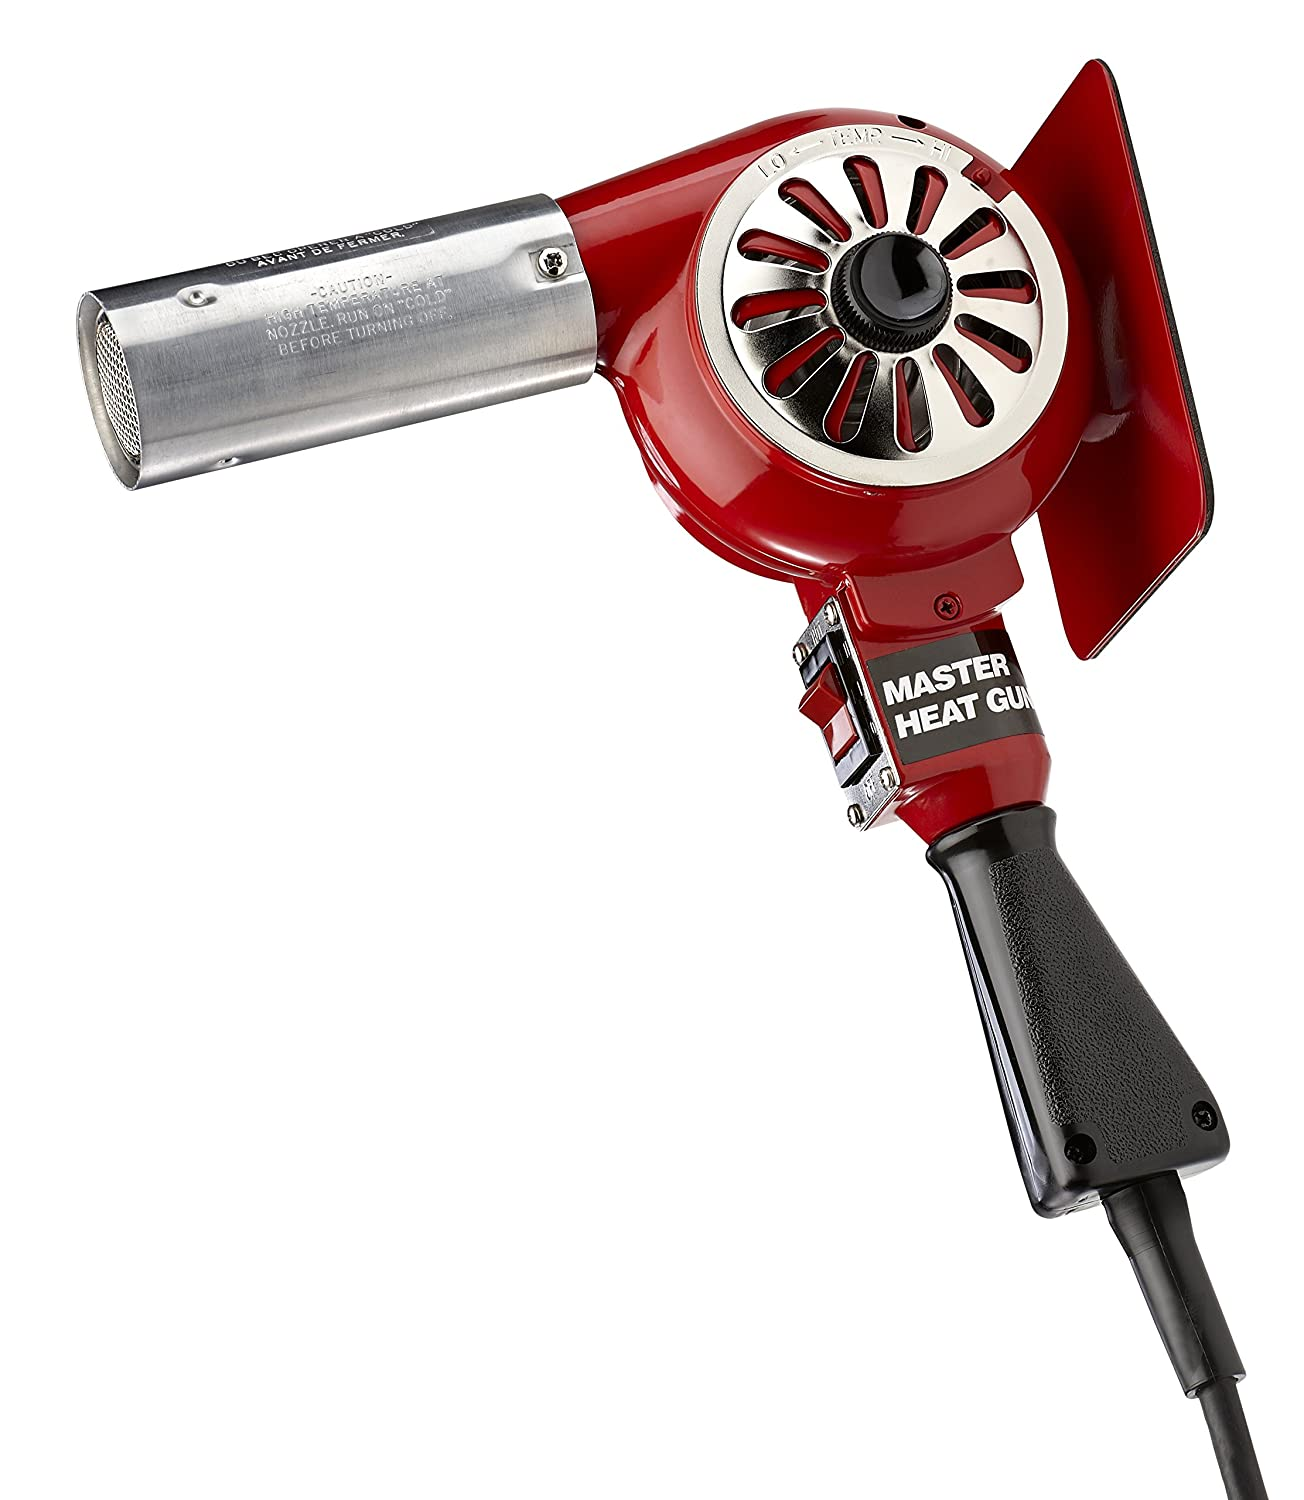 Master Appliance HG-201A Professional Heavy Duty Heat Gun, 300 Degree Fahrenheit 120V 600 Watts